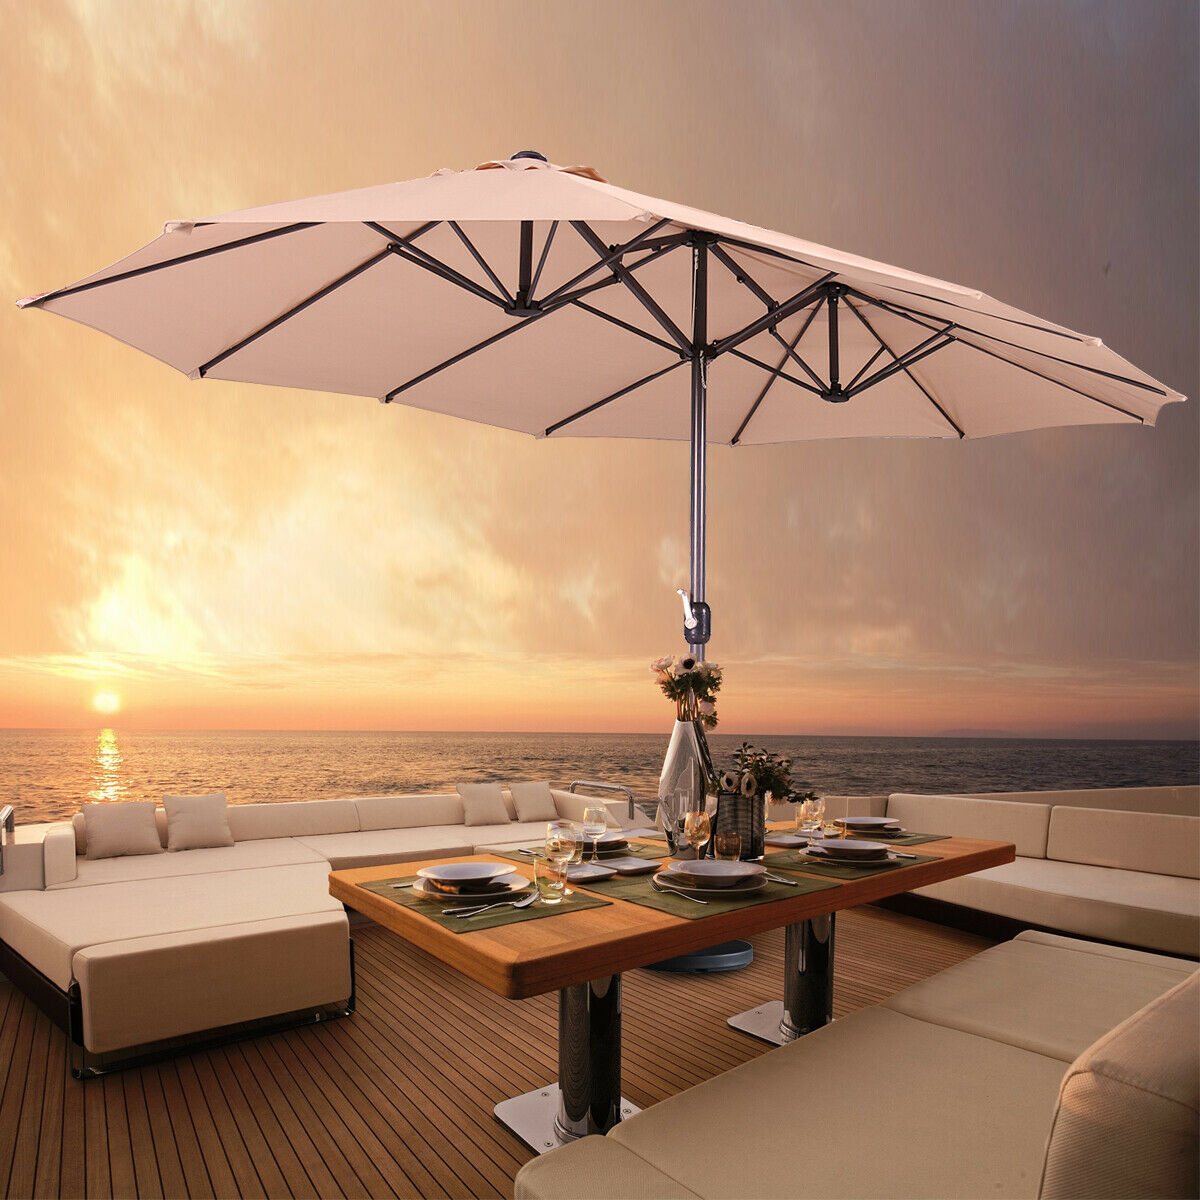 15' Double-sided Large Patio Twin Umbrella Outdoor Garden Ma